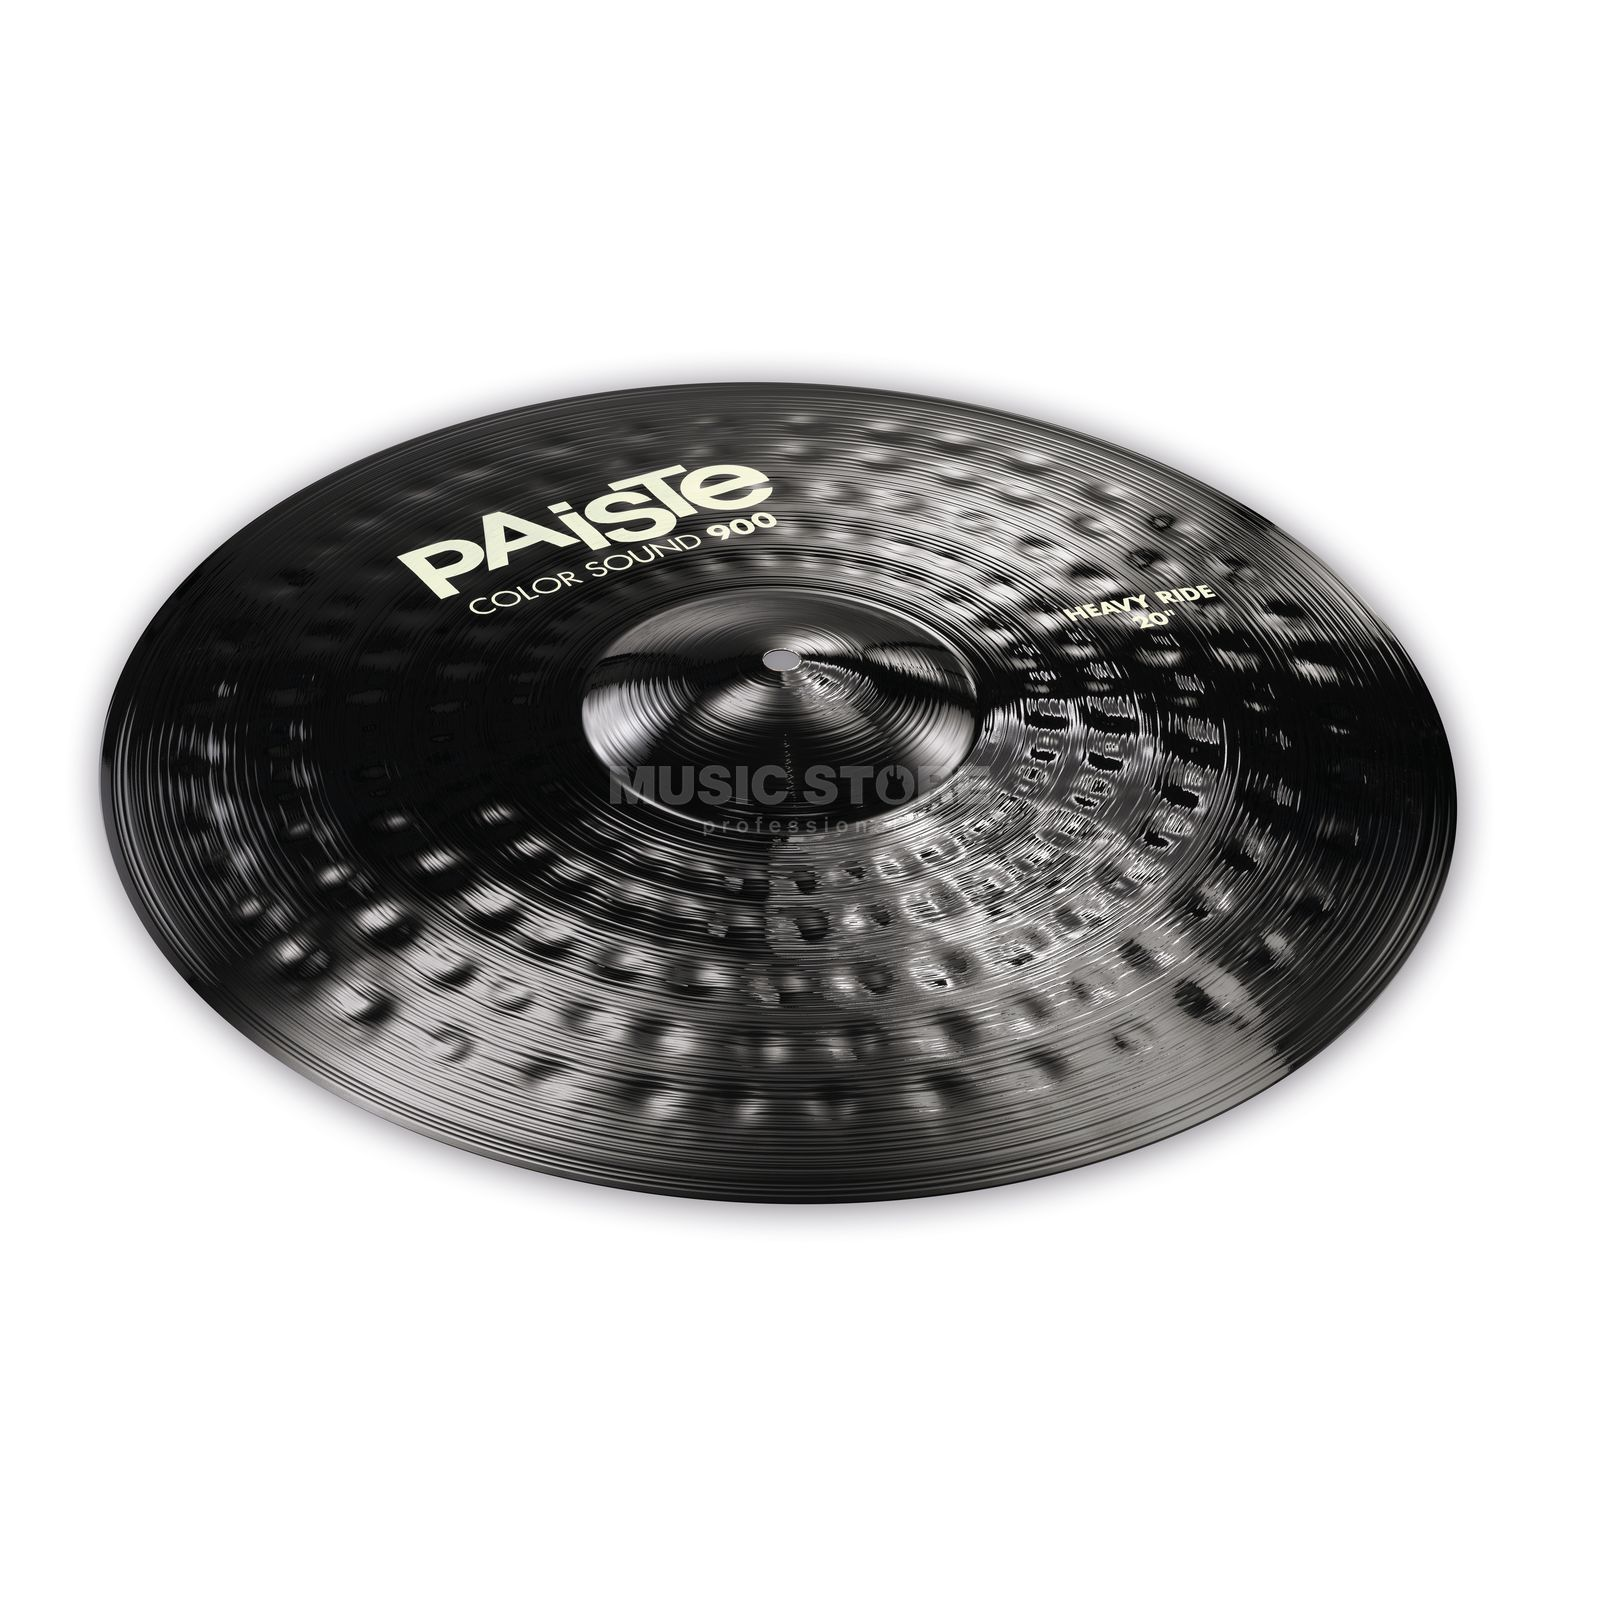 "Paiste CS 900 Heavy Ride 20"" Color Sound Black Immagine prodotto"